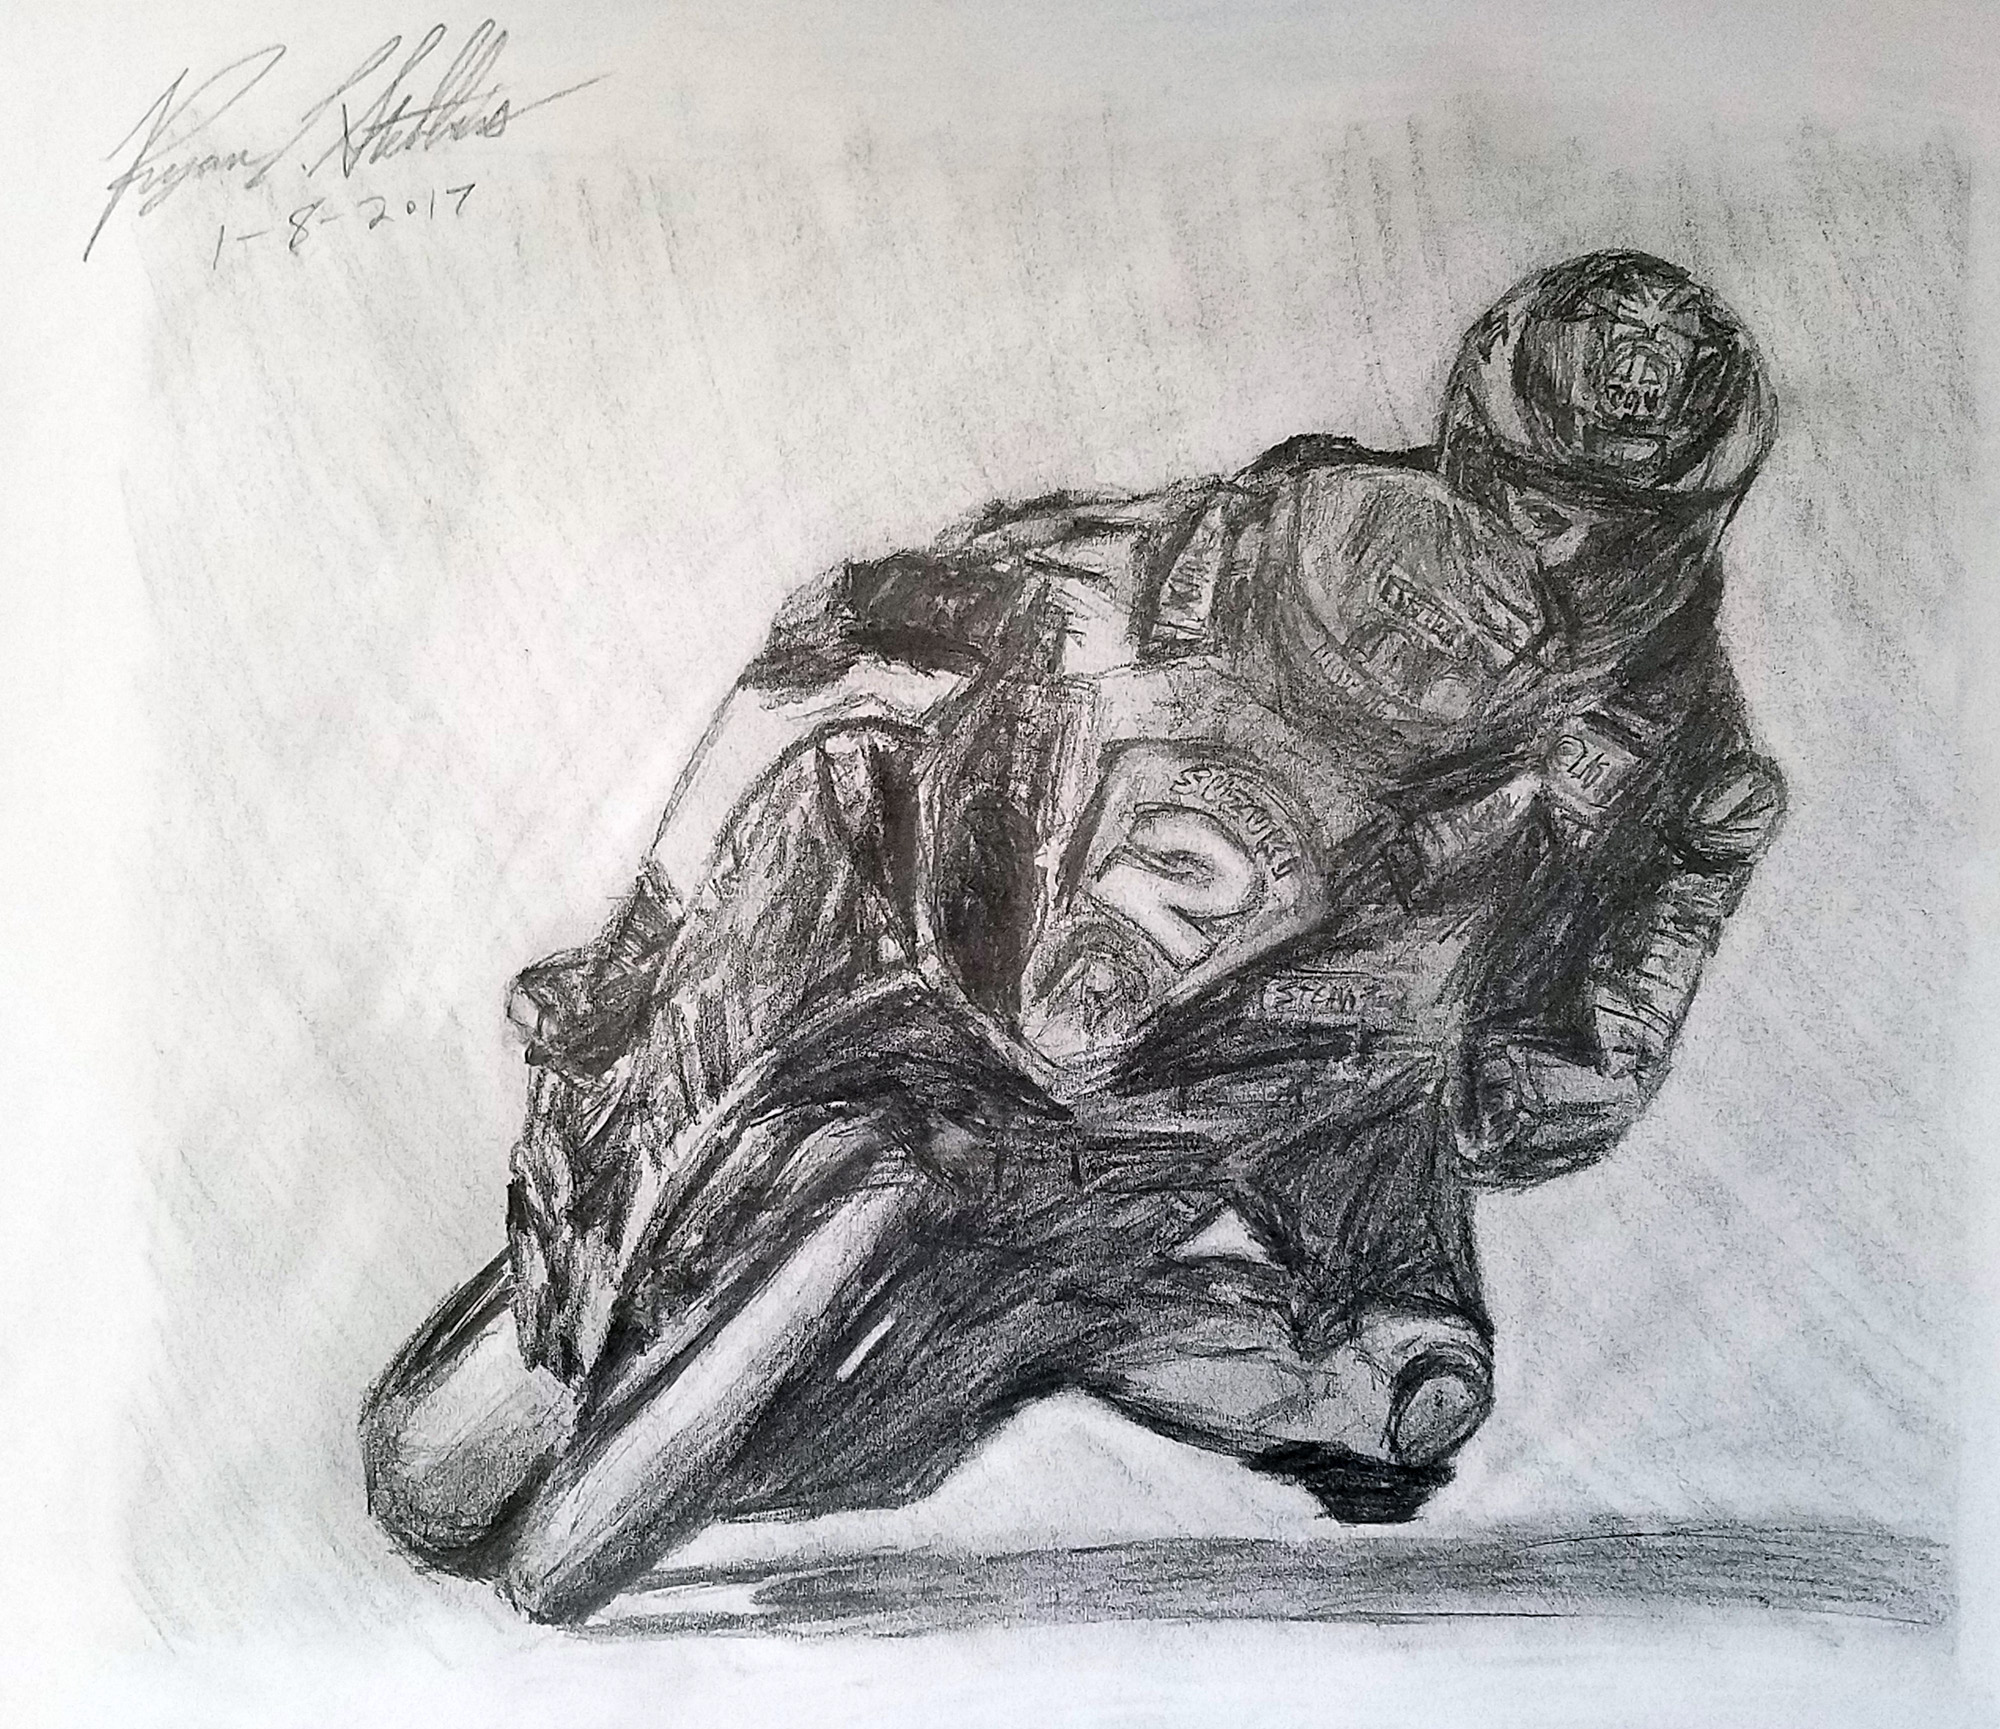 Guy Martin, Roadracer - Drawn in 2017 by Ryan C. Stebbins